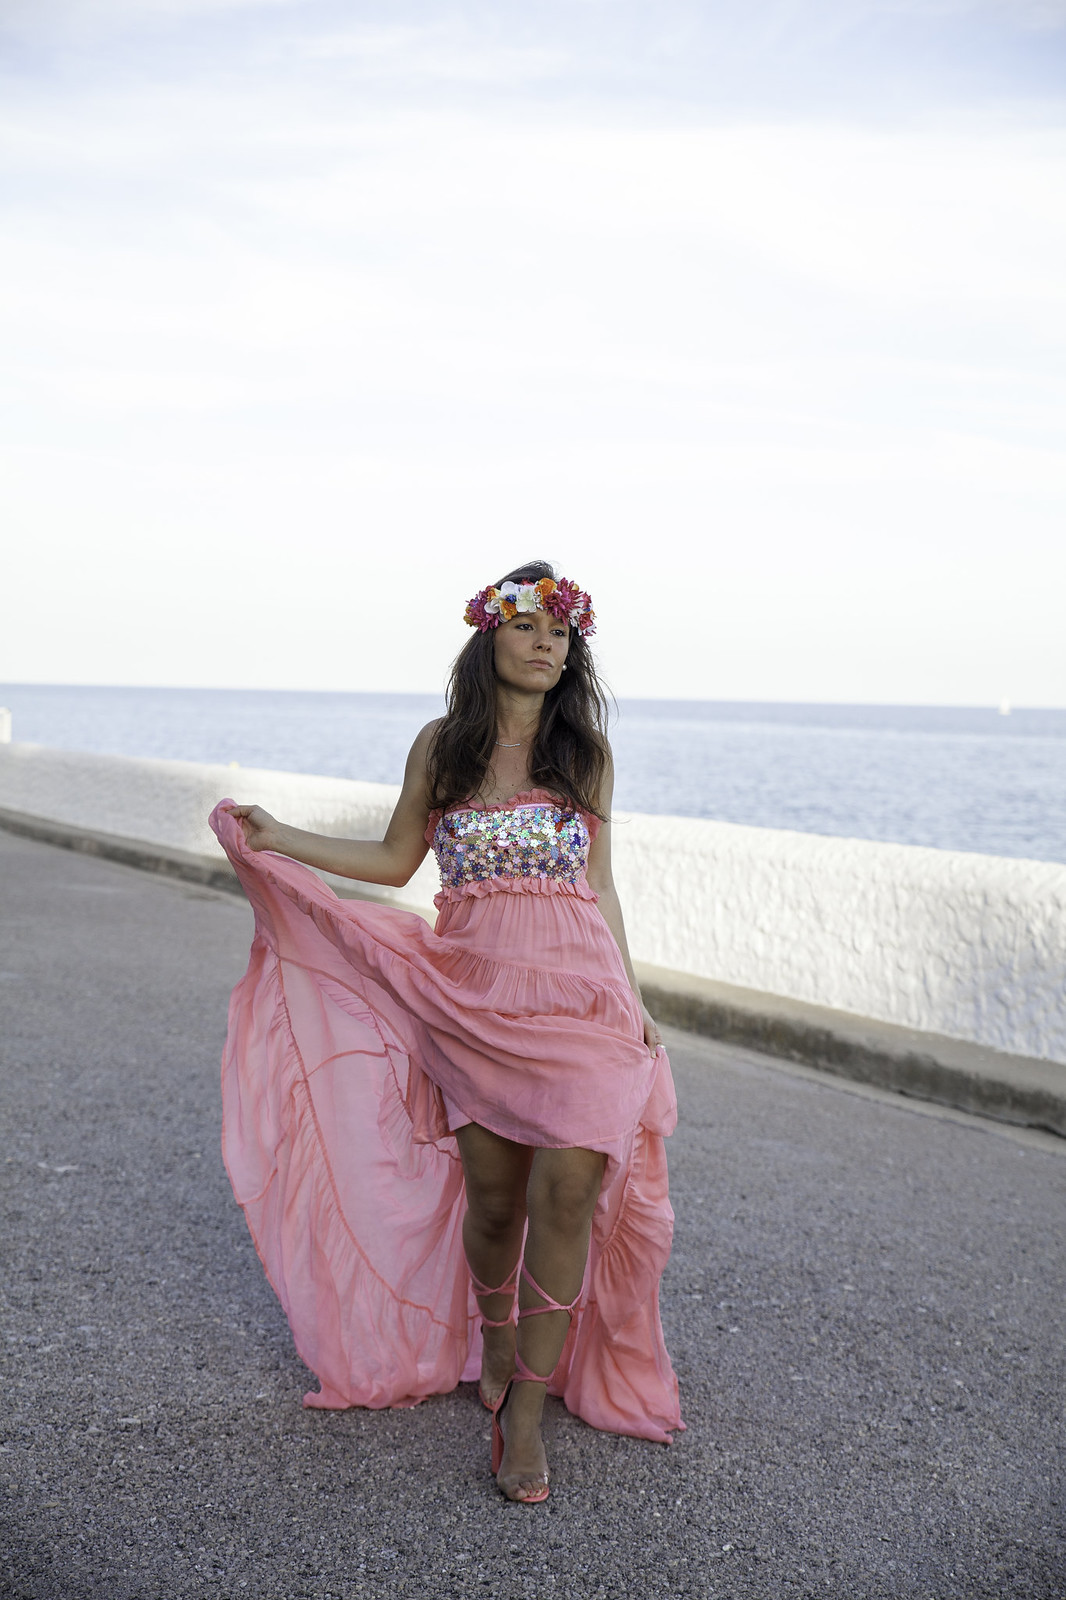 08_El_vestido_perfecto_fiesta_san_juan_verbena_highly_preppy_theguestgirl_fashion_influencer_barcelona_bilbao